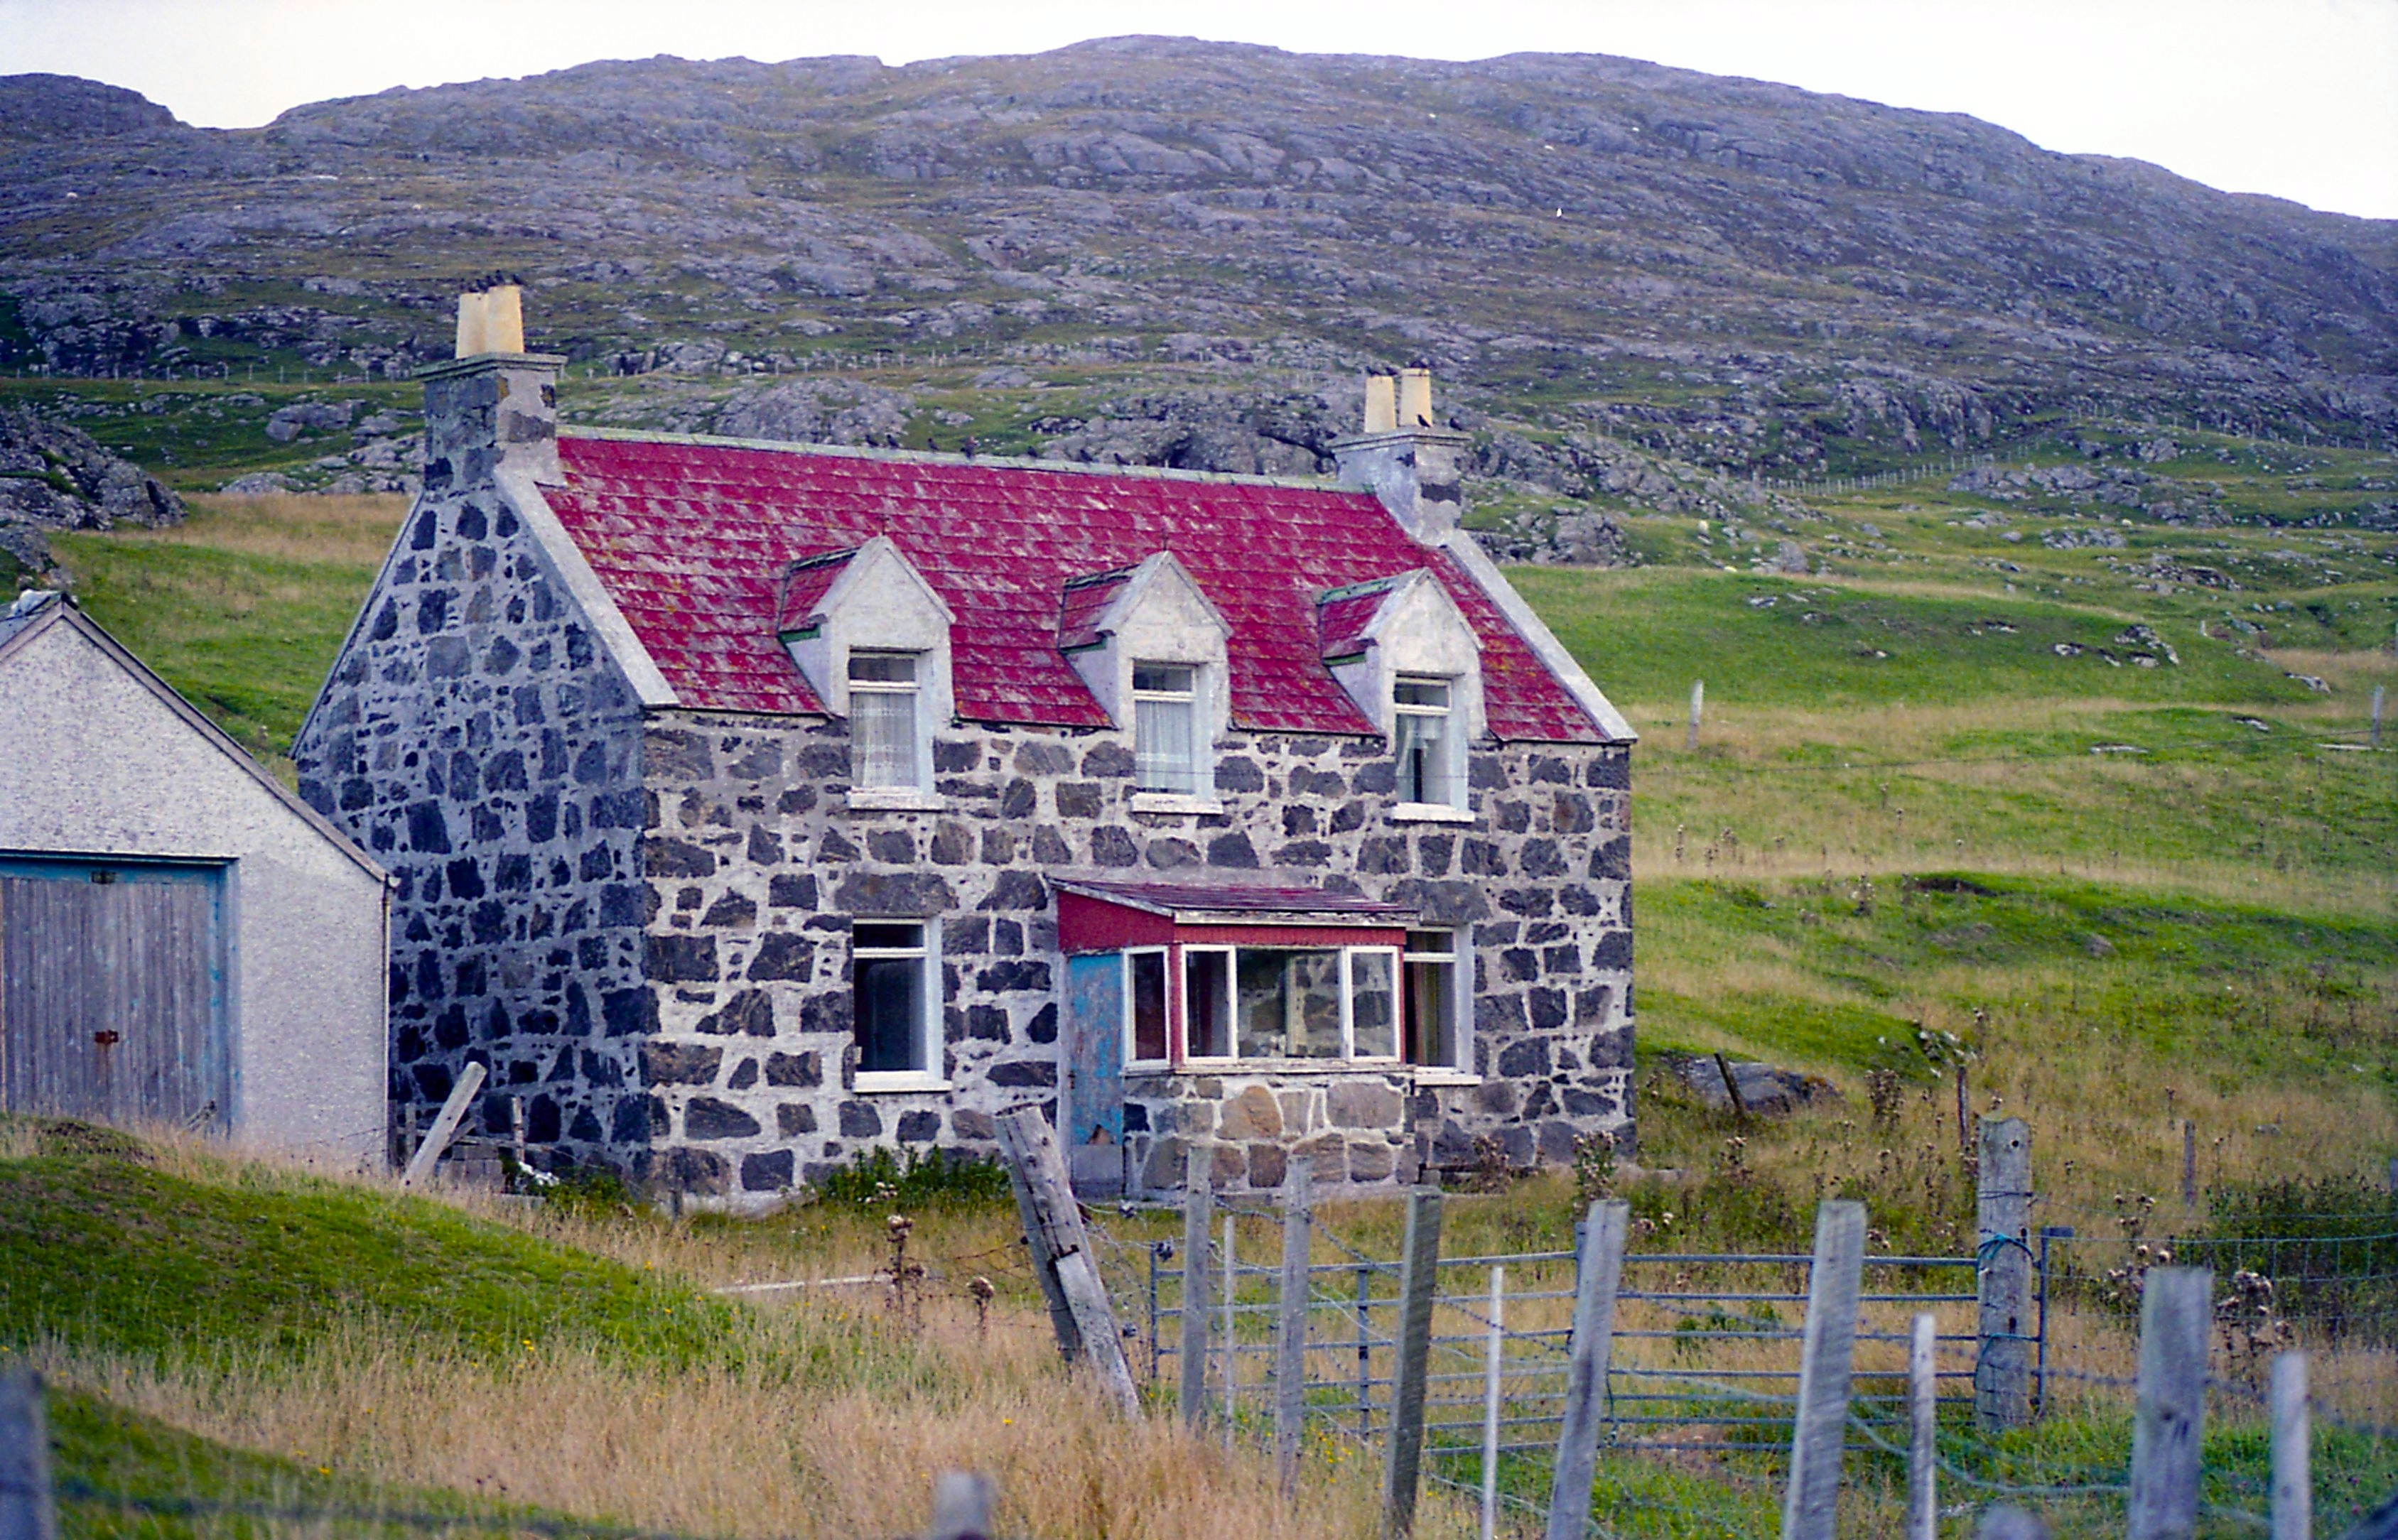 Image of a croft house in front of a hill in rural Scotland.